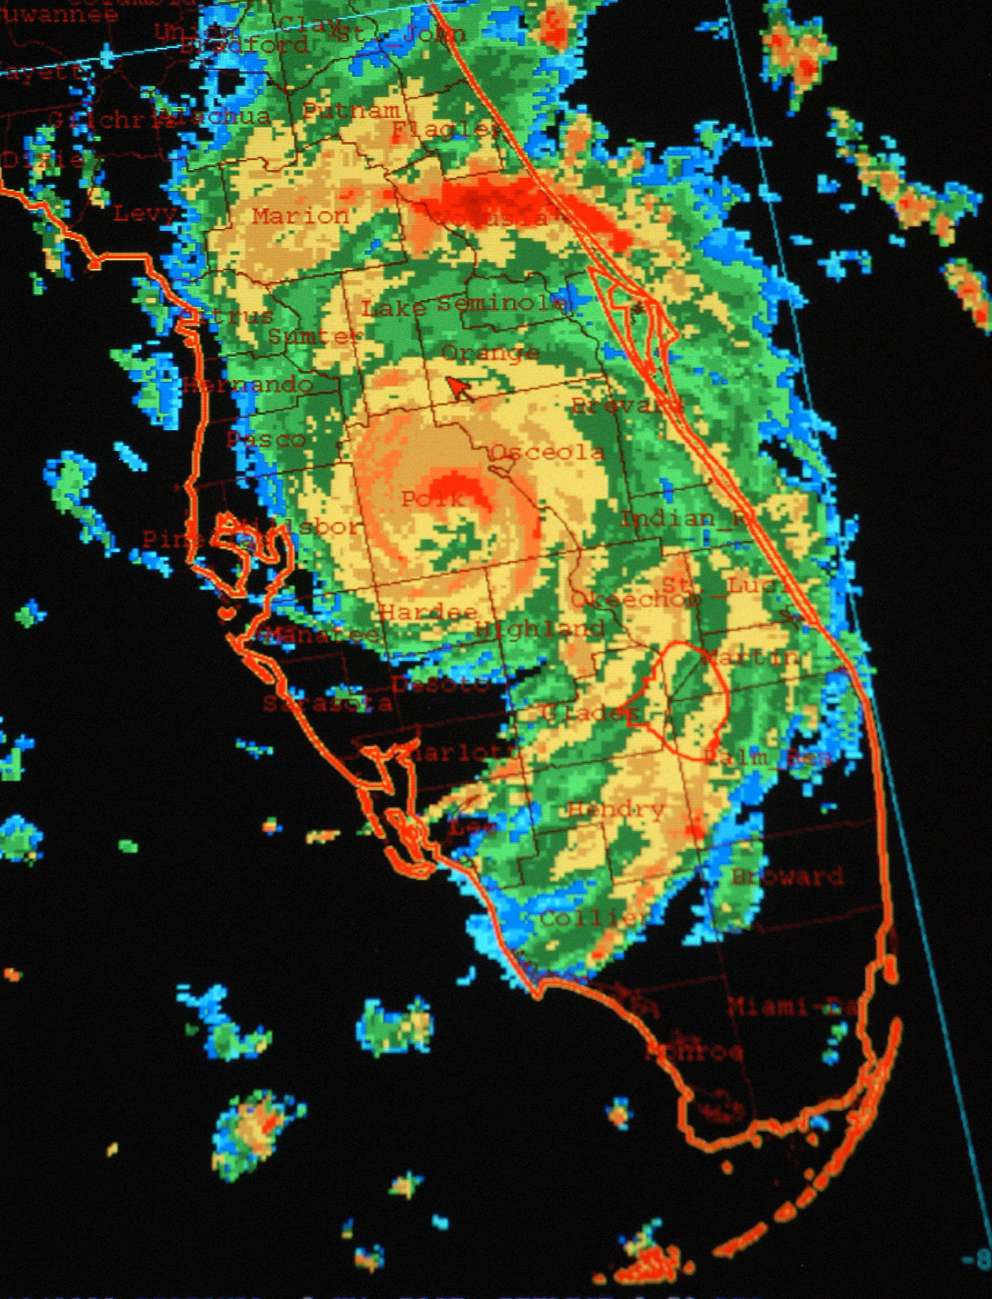 This National Hurricane Center satellite image shows Hurricane Charley south of Orlando, Fla., moving north-northeast, in an image time-stamped at 7:32 p.m. EDT, Friday, Aug. 13, 2004. (AP Photo/National Hurricane Center)